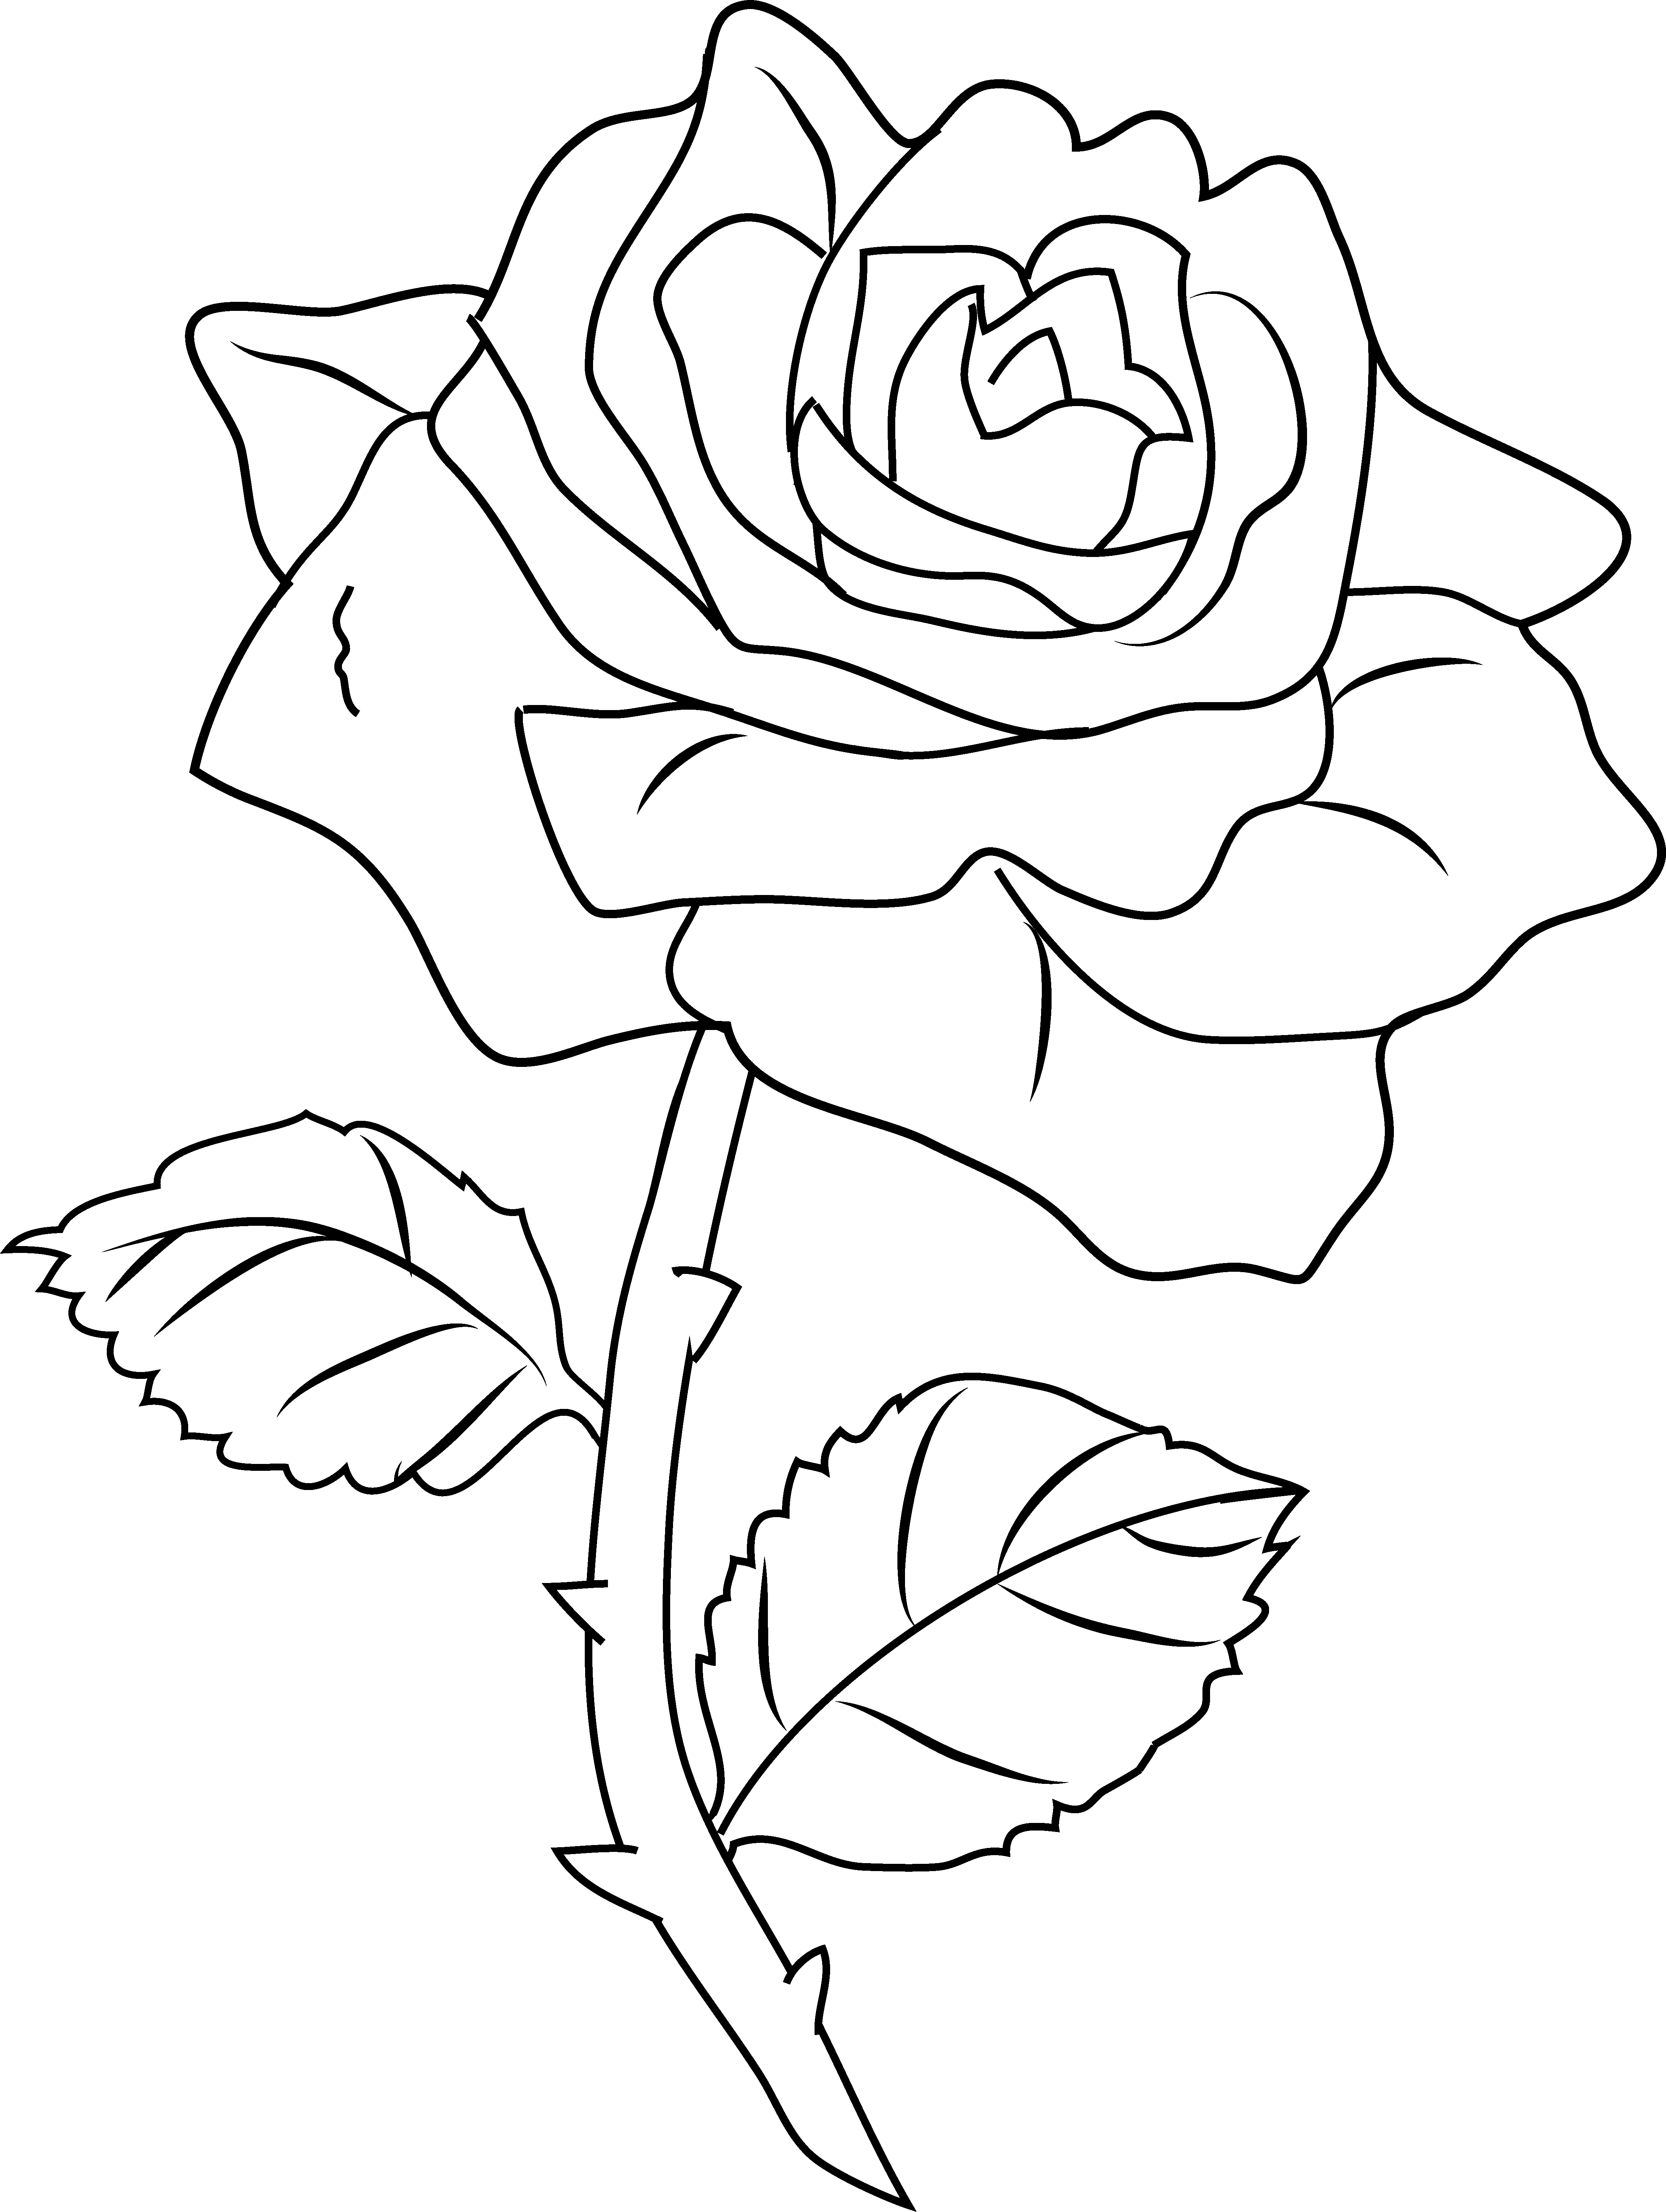 rose for coloring free printable roses coloring pages for kids coloring for rose